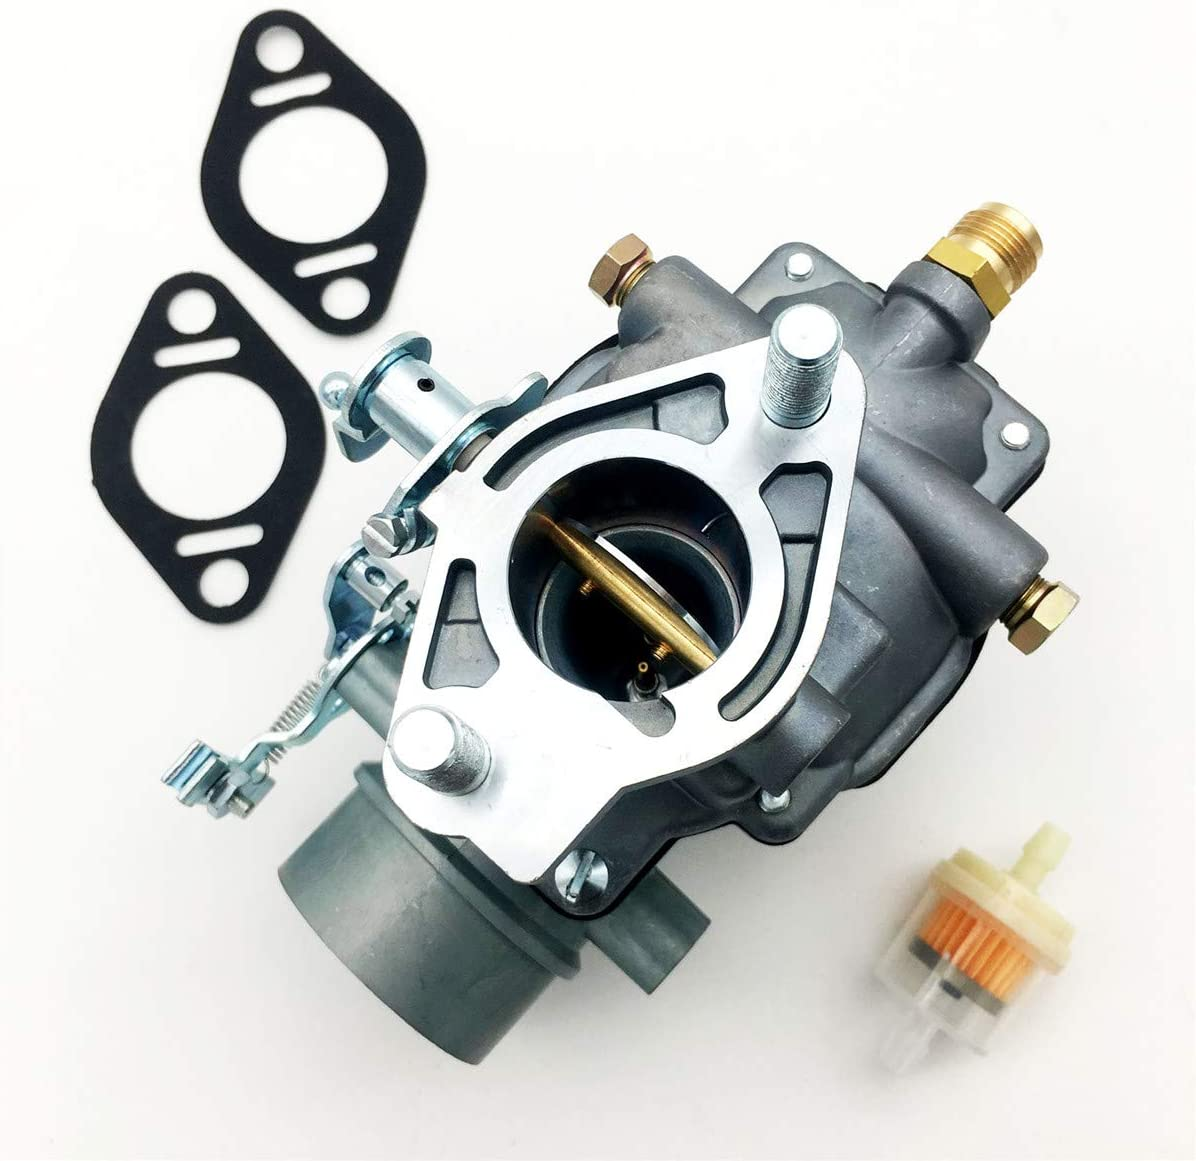 NEW Carburetor Replacement for Ford//New Holland R6863 R7893 R7896 R8553 13916 C5NE9510C C5NN9510M C7NN9510C 1103-0004